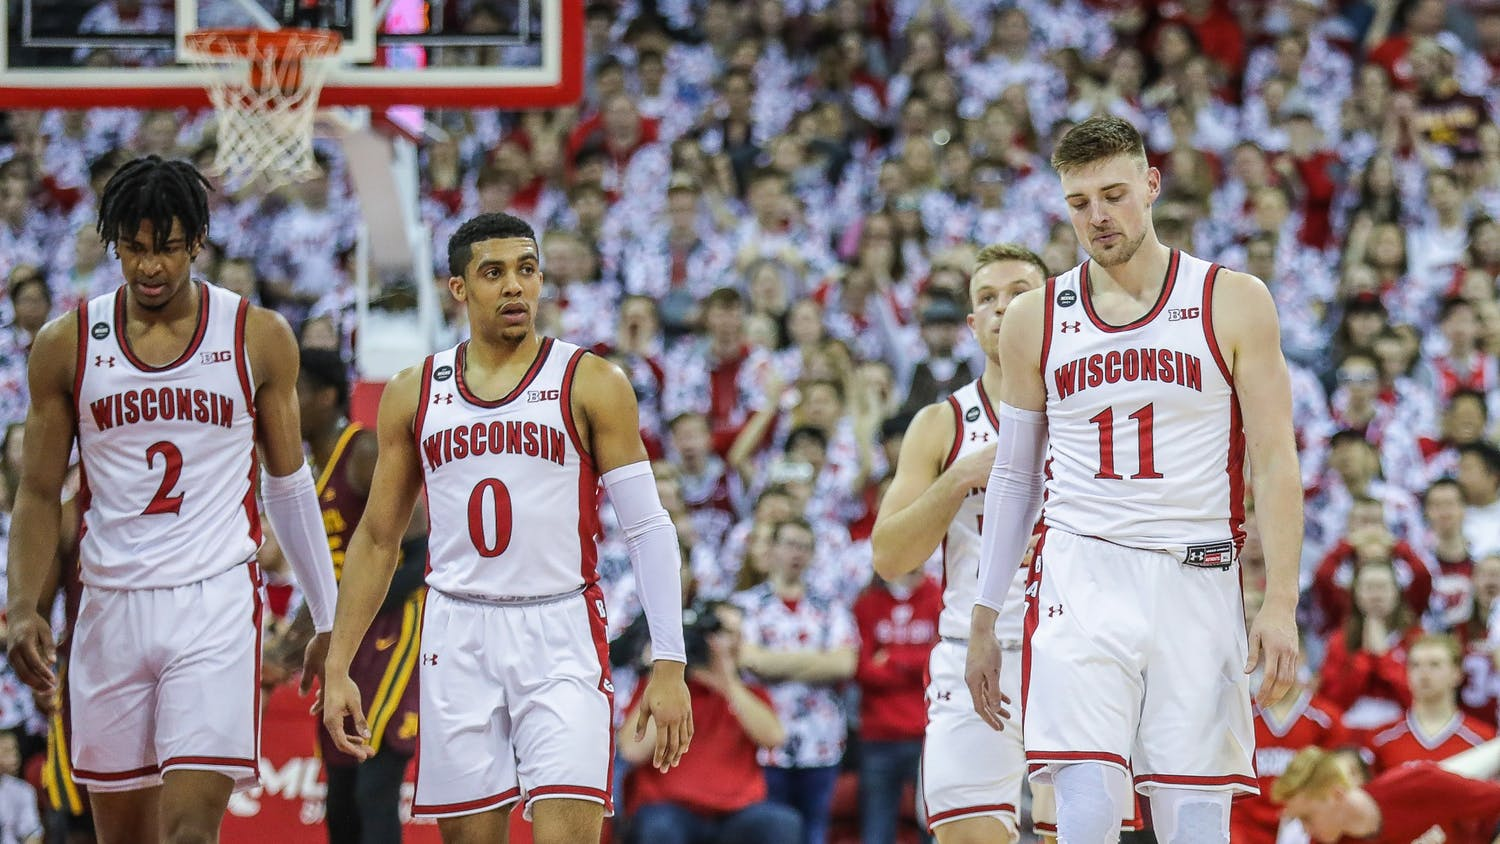 The veteran Badgers could not handle the Wolverines on Tuesday night, leading to one of their worst losses of the season.